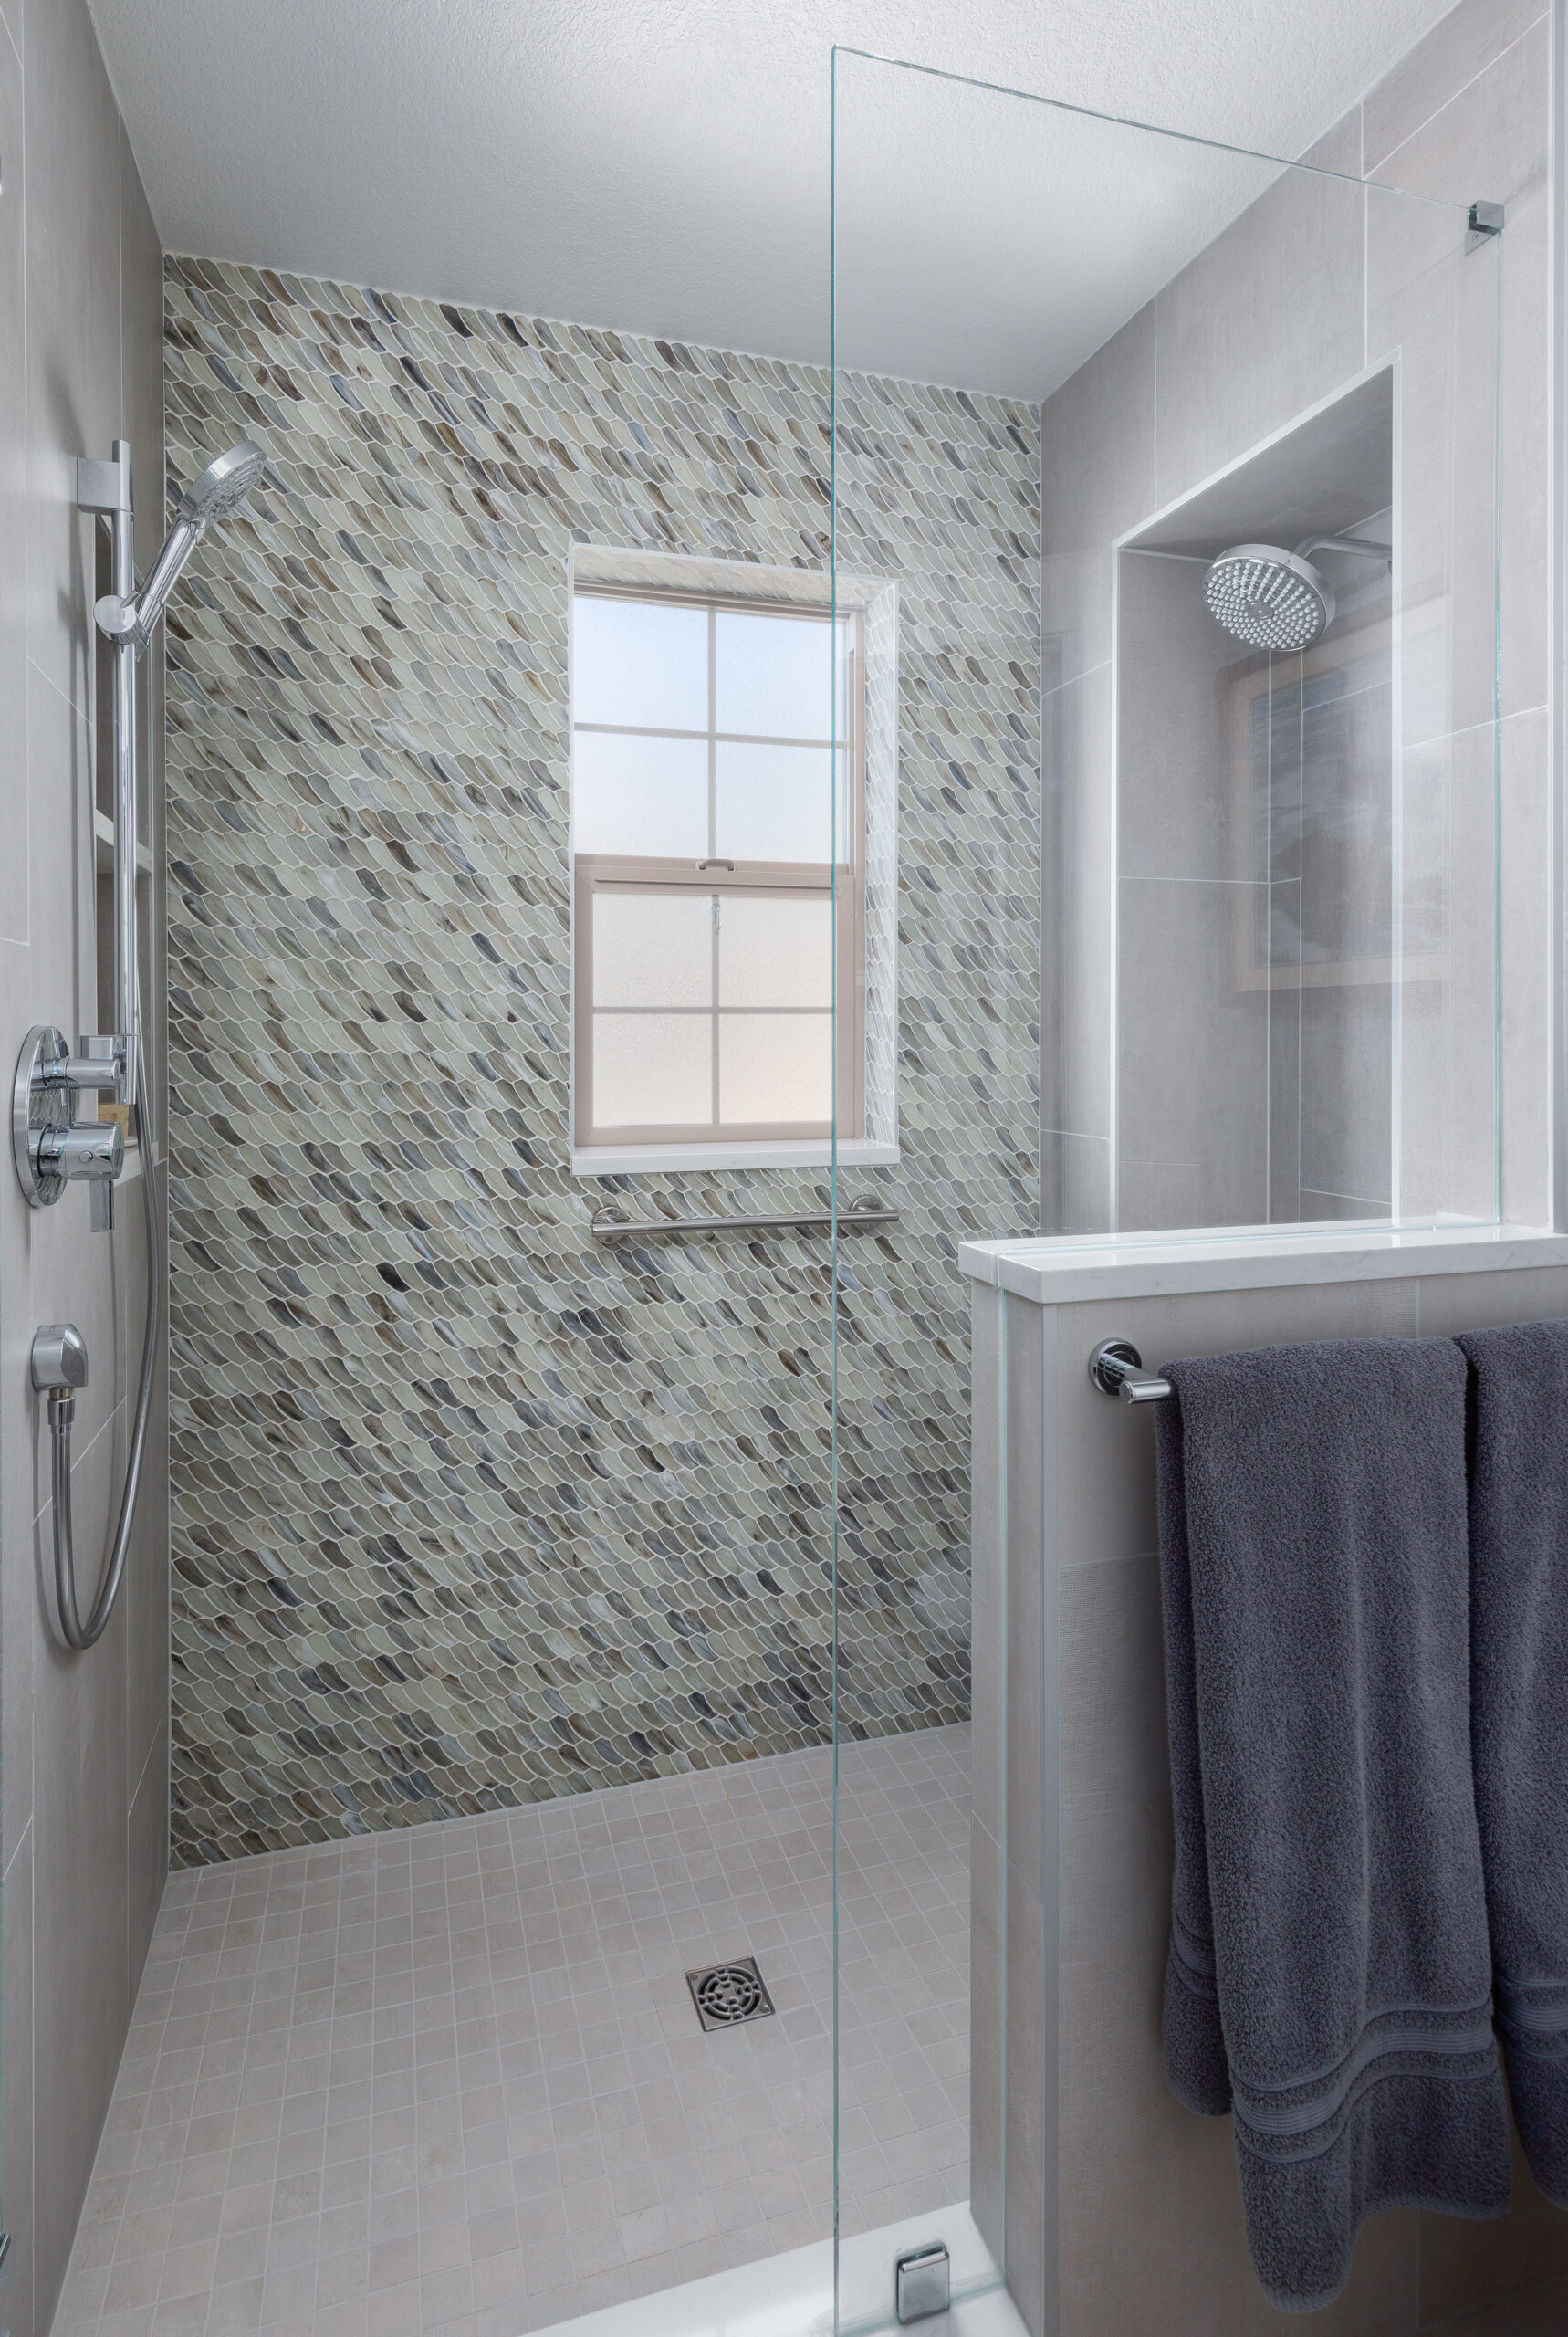 KE Interior Solutions two-person shower